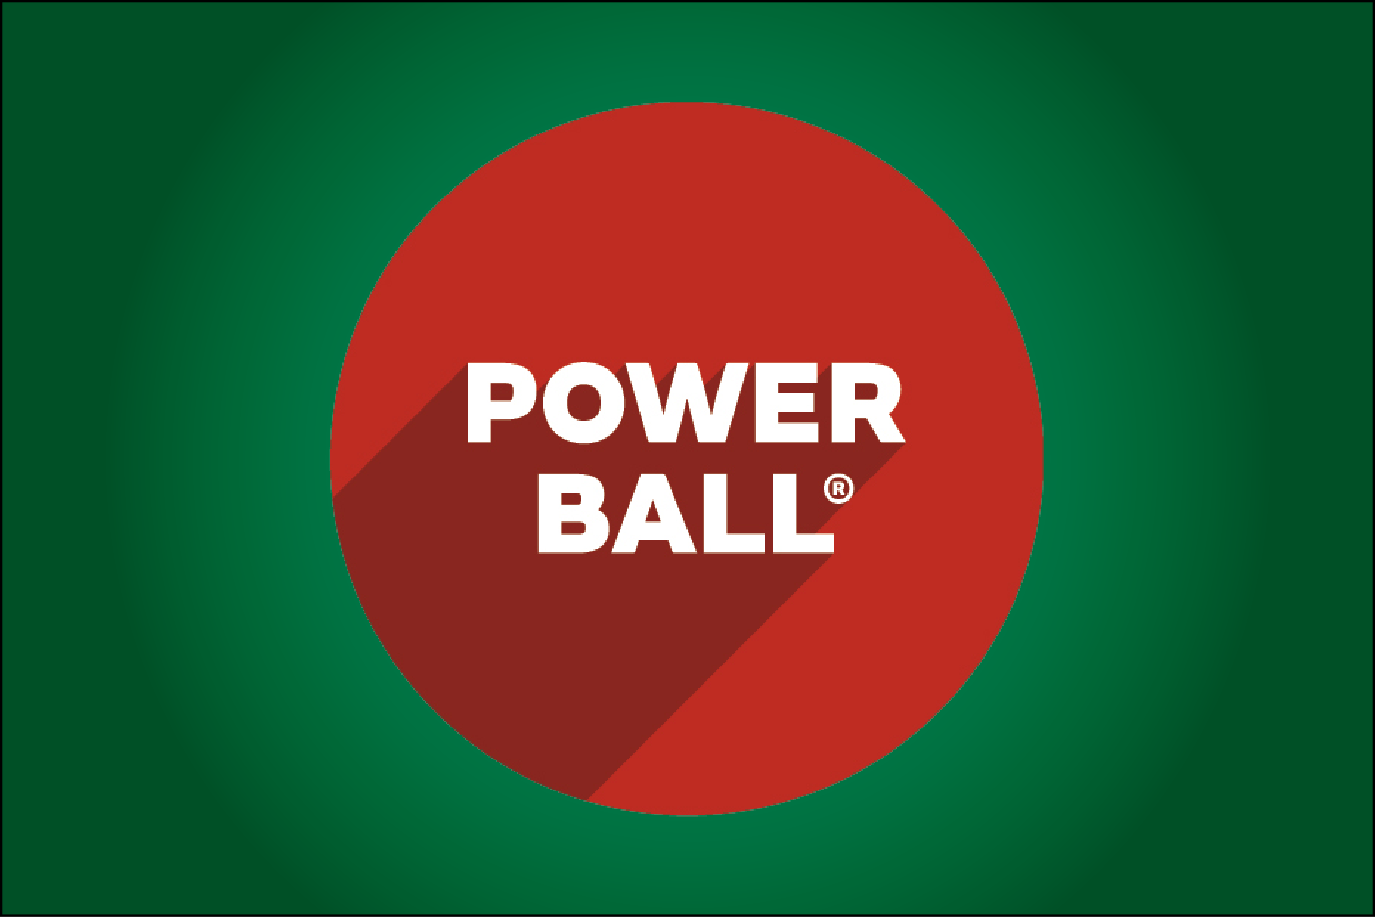 PROMO 660 x 440 Miscellaneous Power Ball Logo